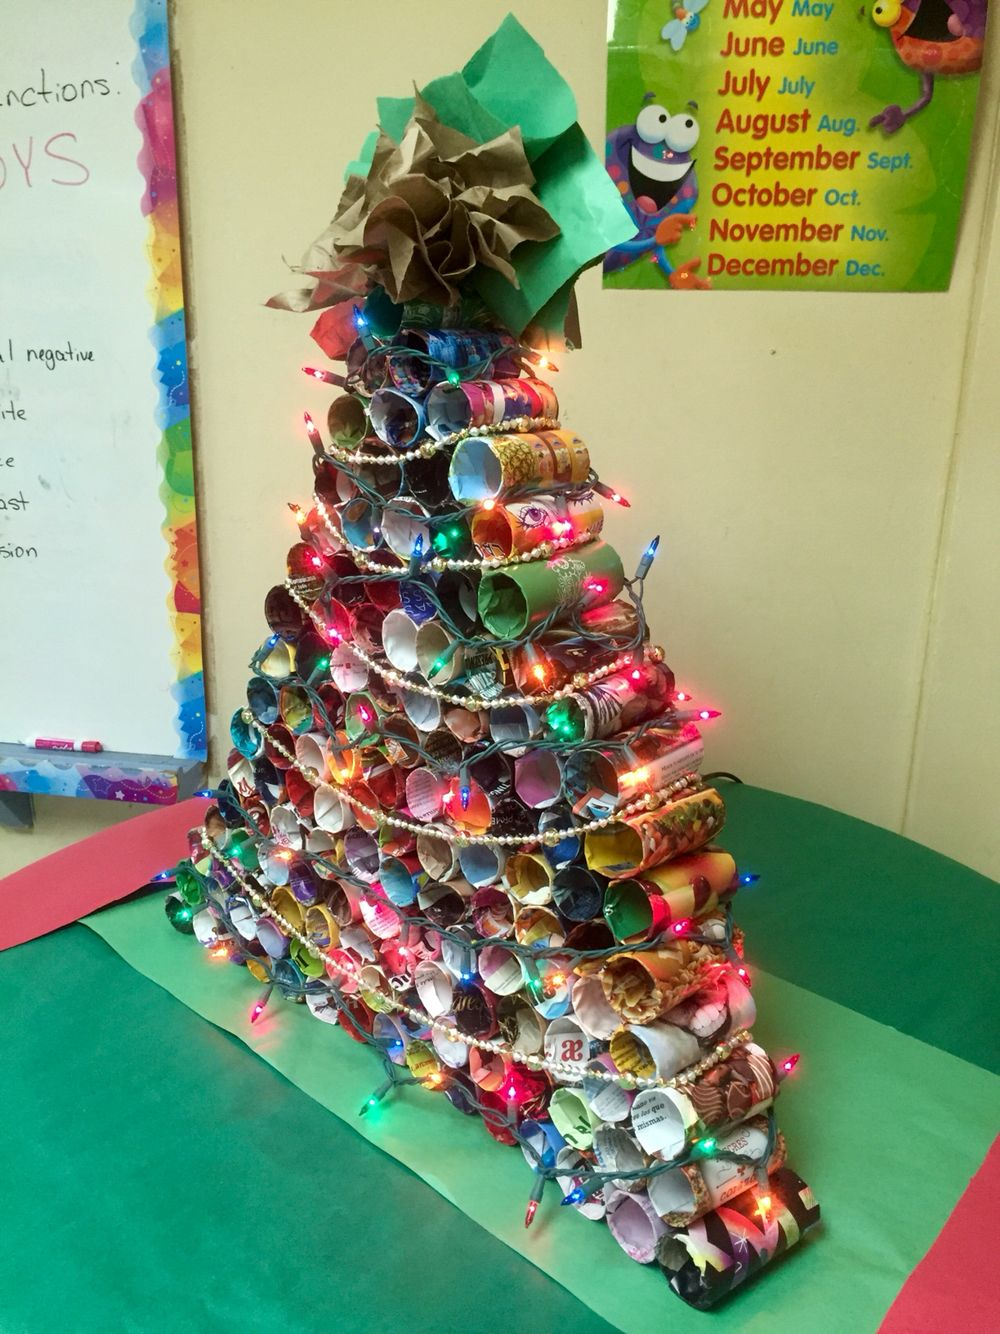 Christmas Tree From Recycled Materials Toliet Paper Rolls Wrapped With Magazine Pages And Recycled Christmas Tree Christmas Tree Decorations Tree Decorations